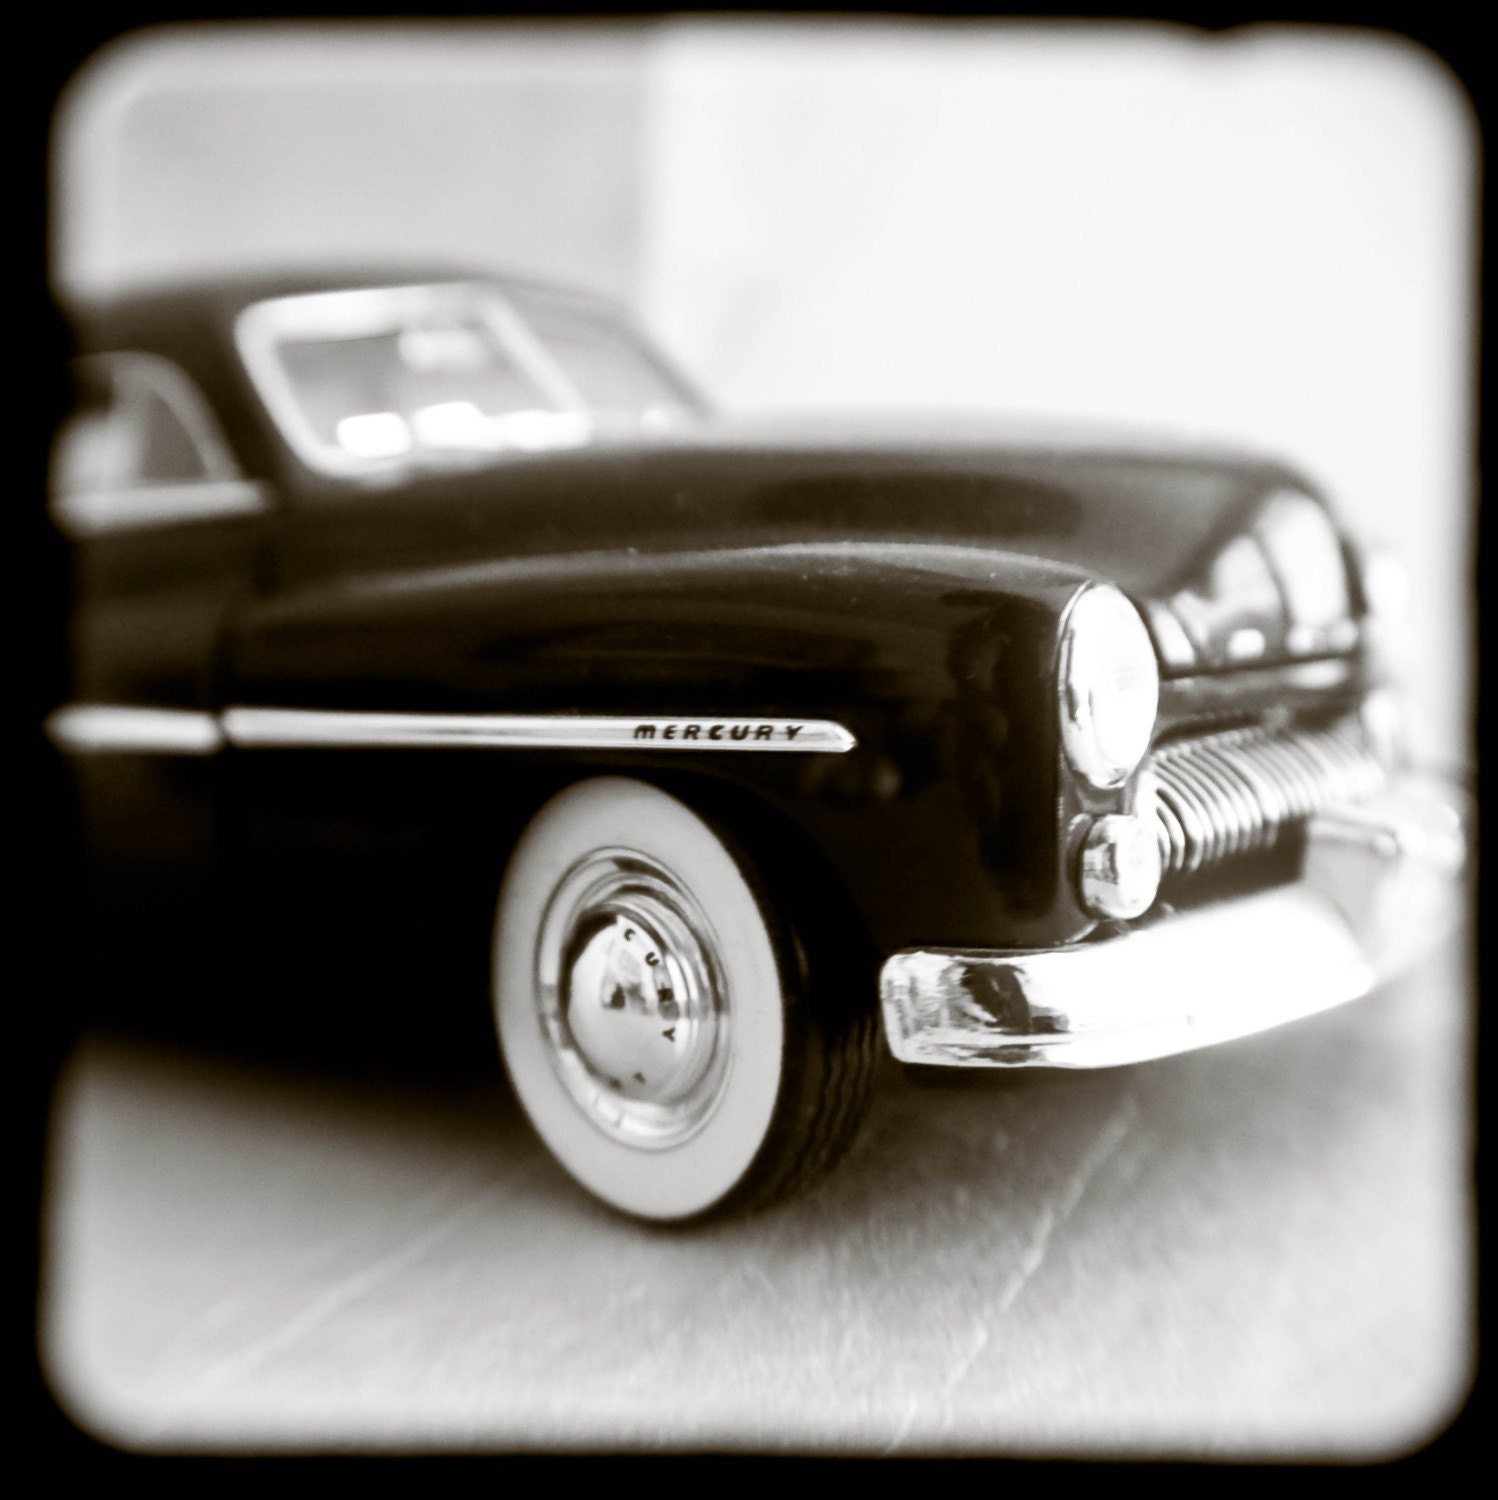 1949 Mercury. From aprilrocha